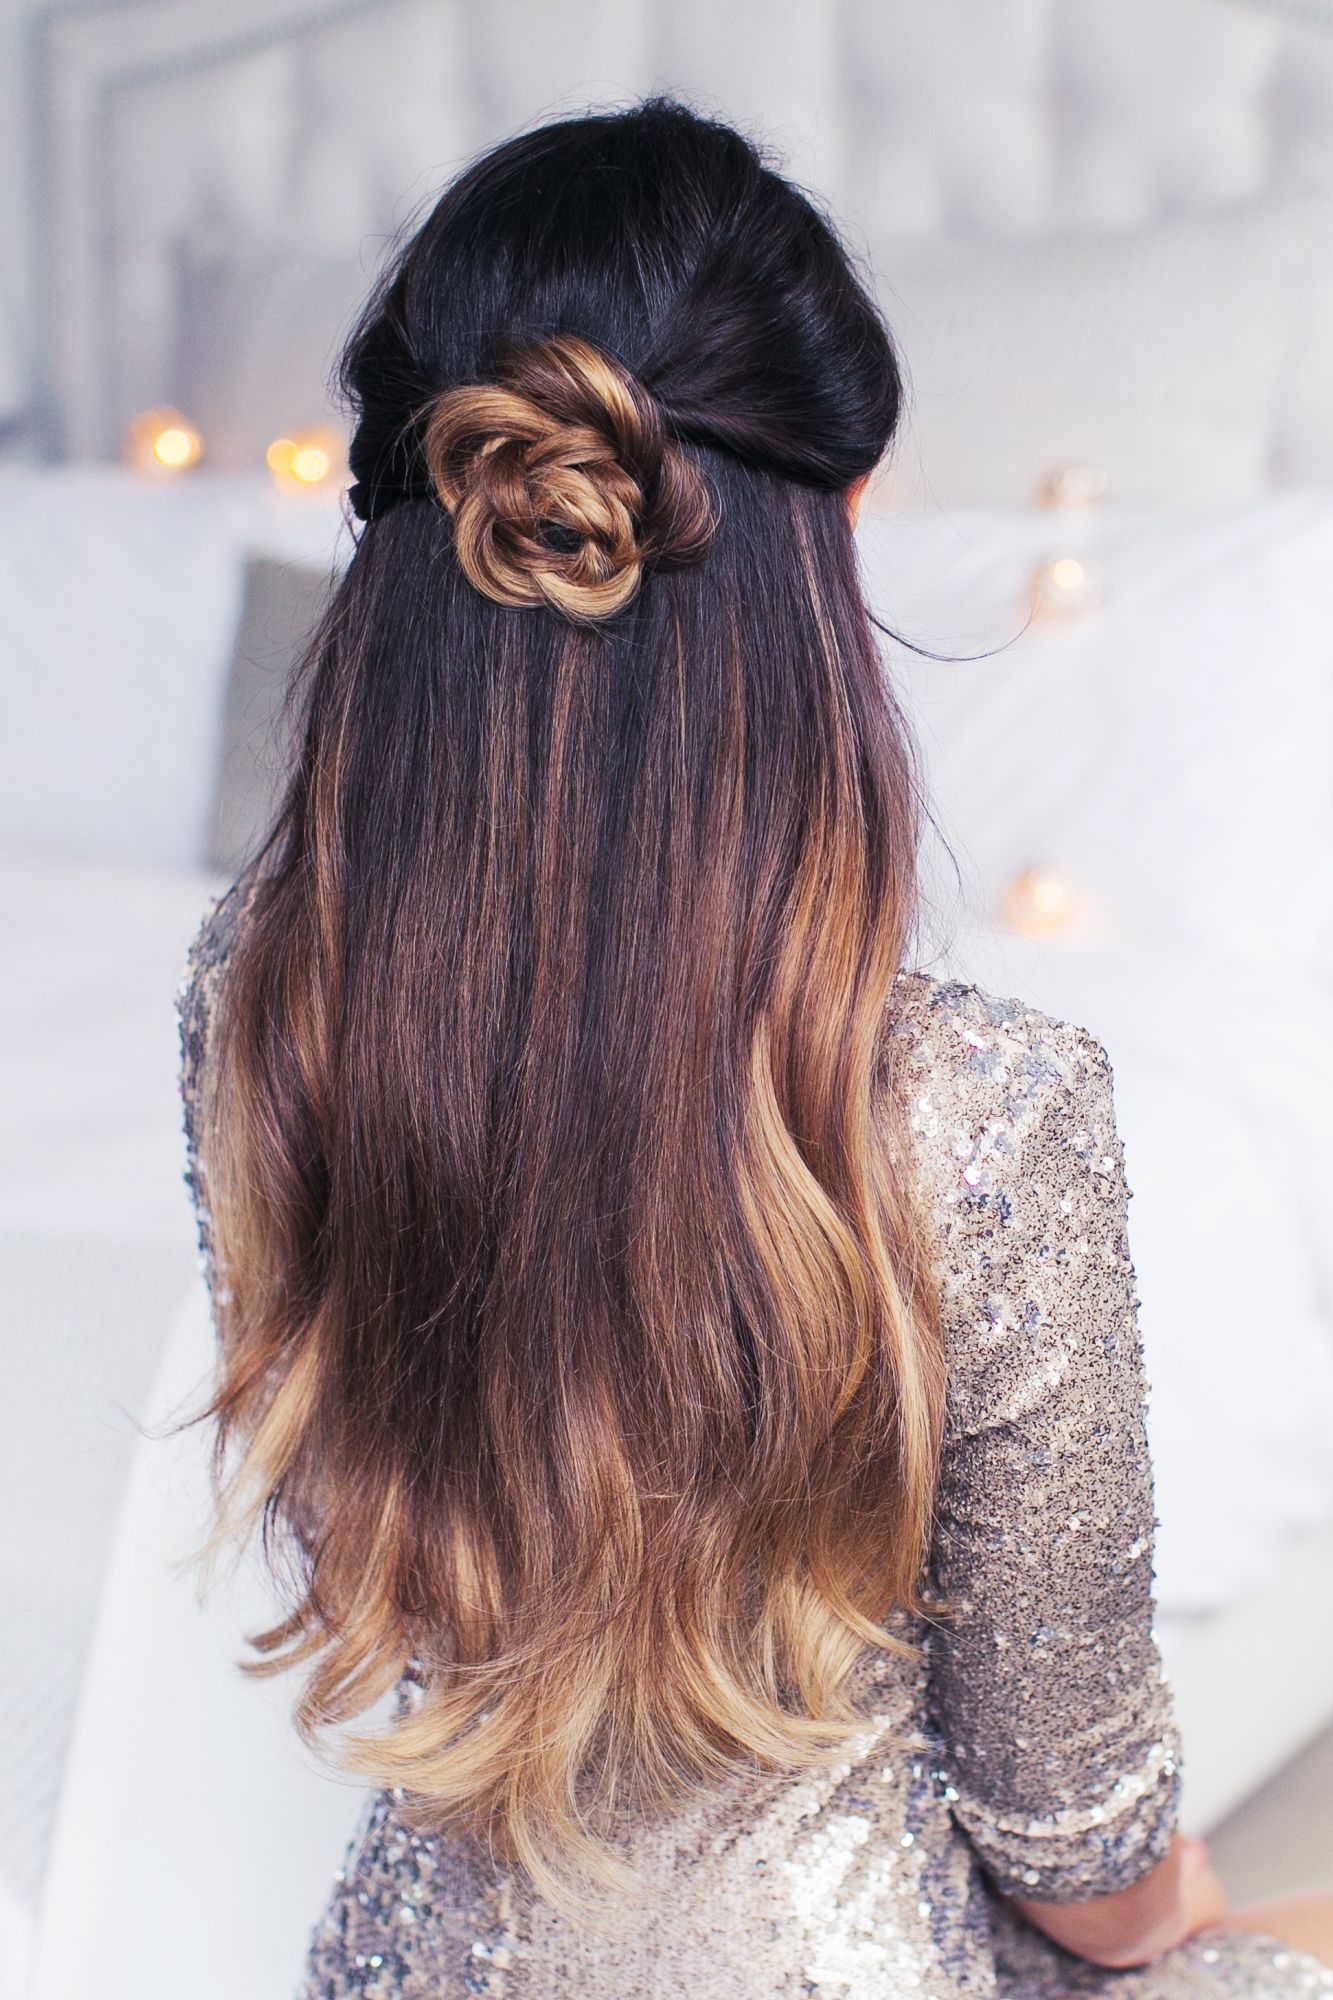 Cute and easy last minute holiday hairstyle flower braid half up